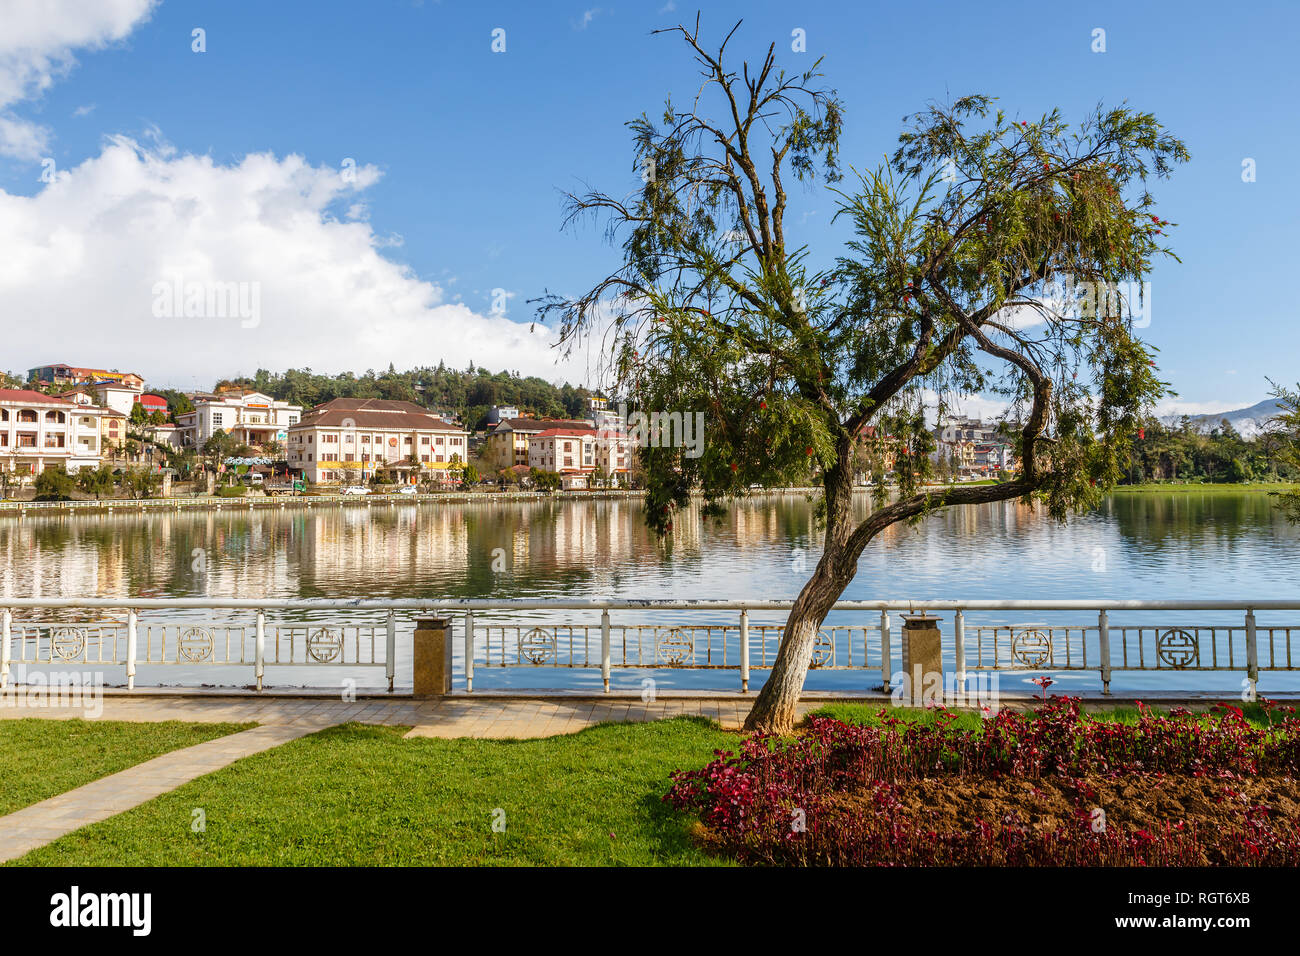 Sapa, Vietnam - November 20, 2018: Green tree on the background of the lake and the city. Beautiful landscape. - Stock Image